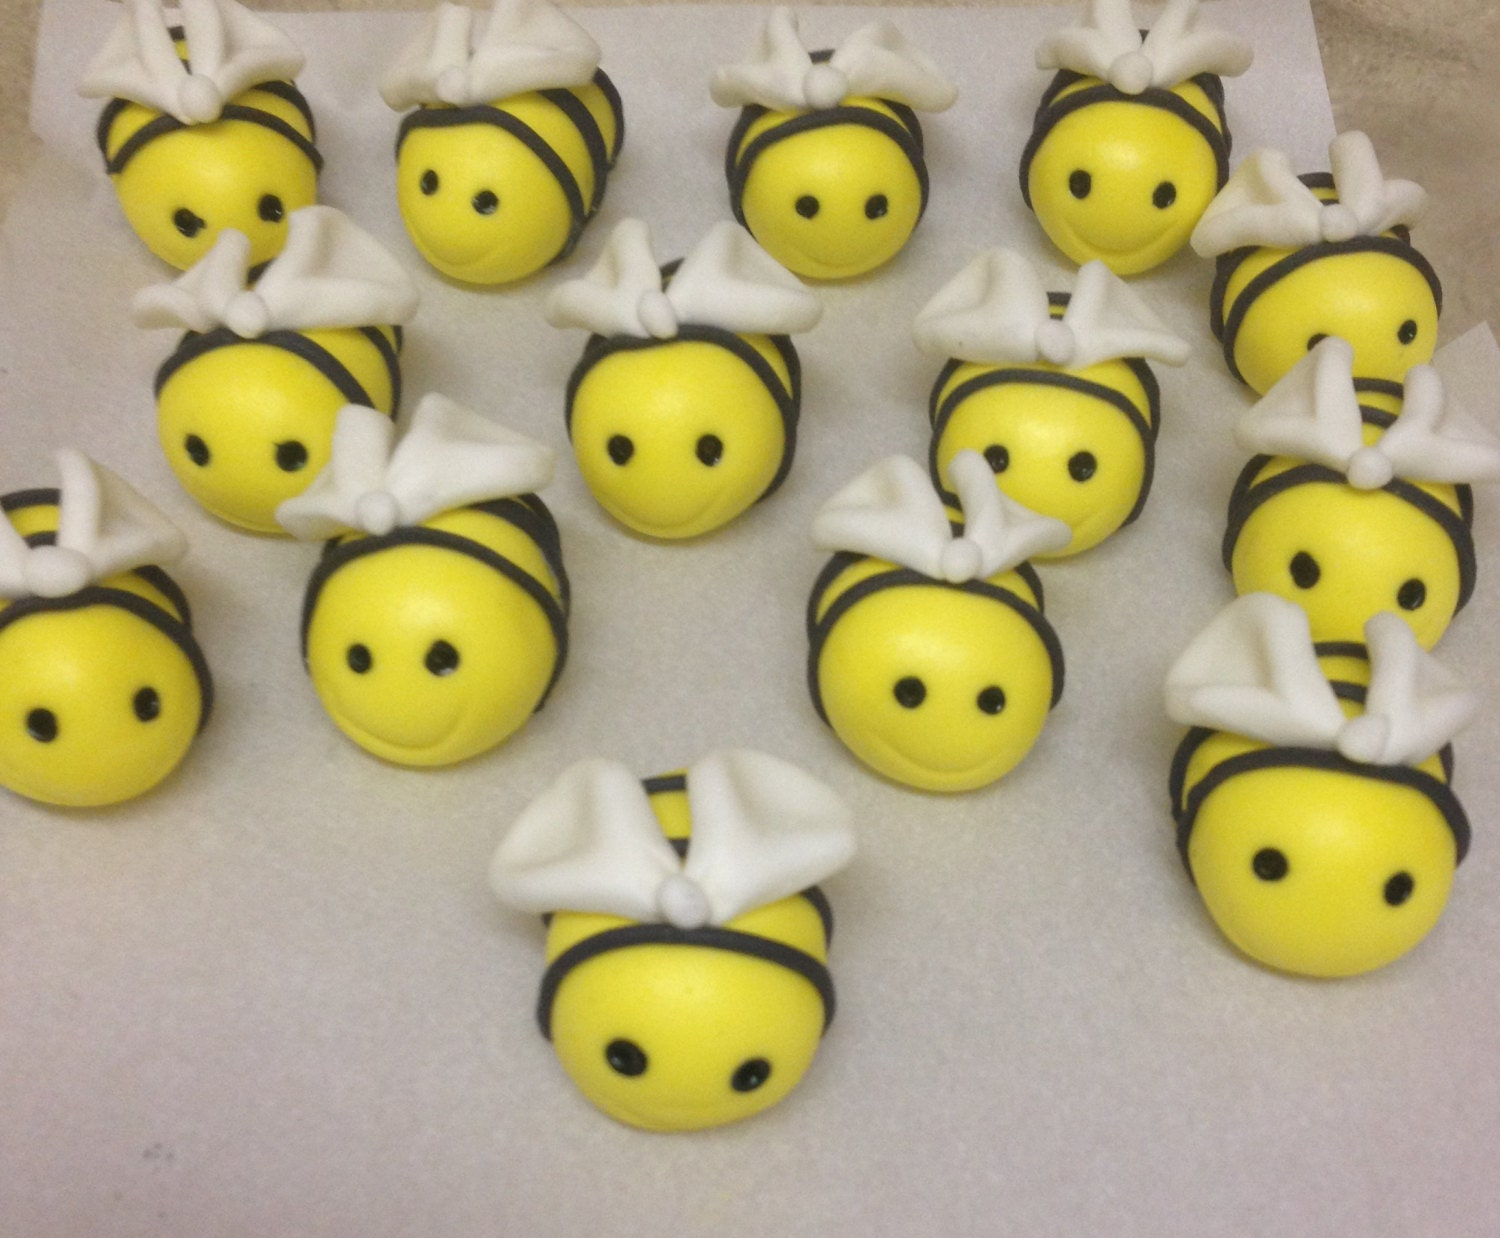 12 Edible Bumble Bee Cake Toppers/ Fondant cup cake